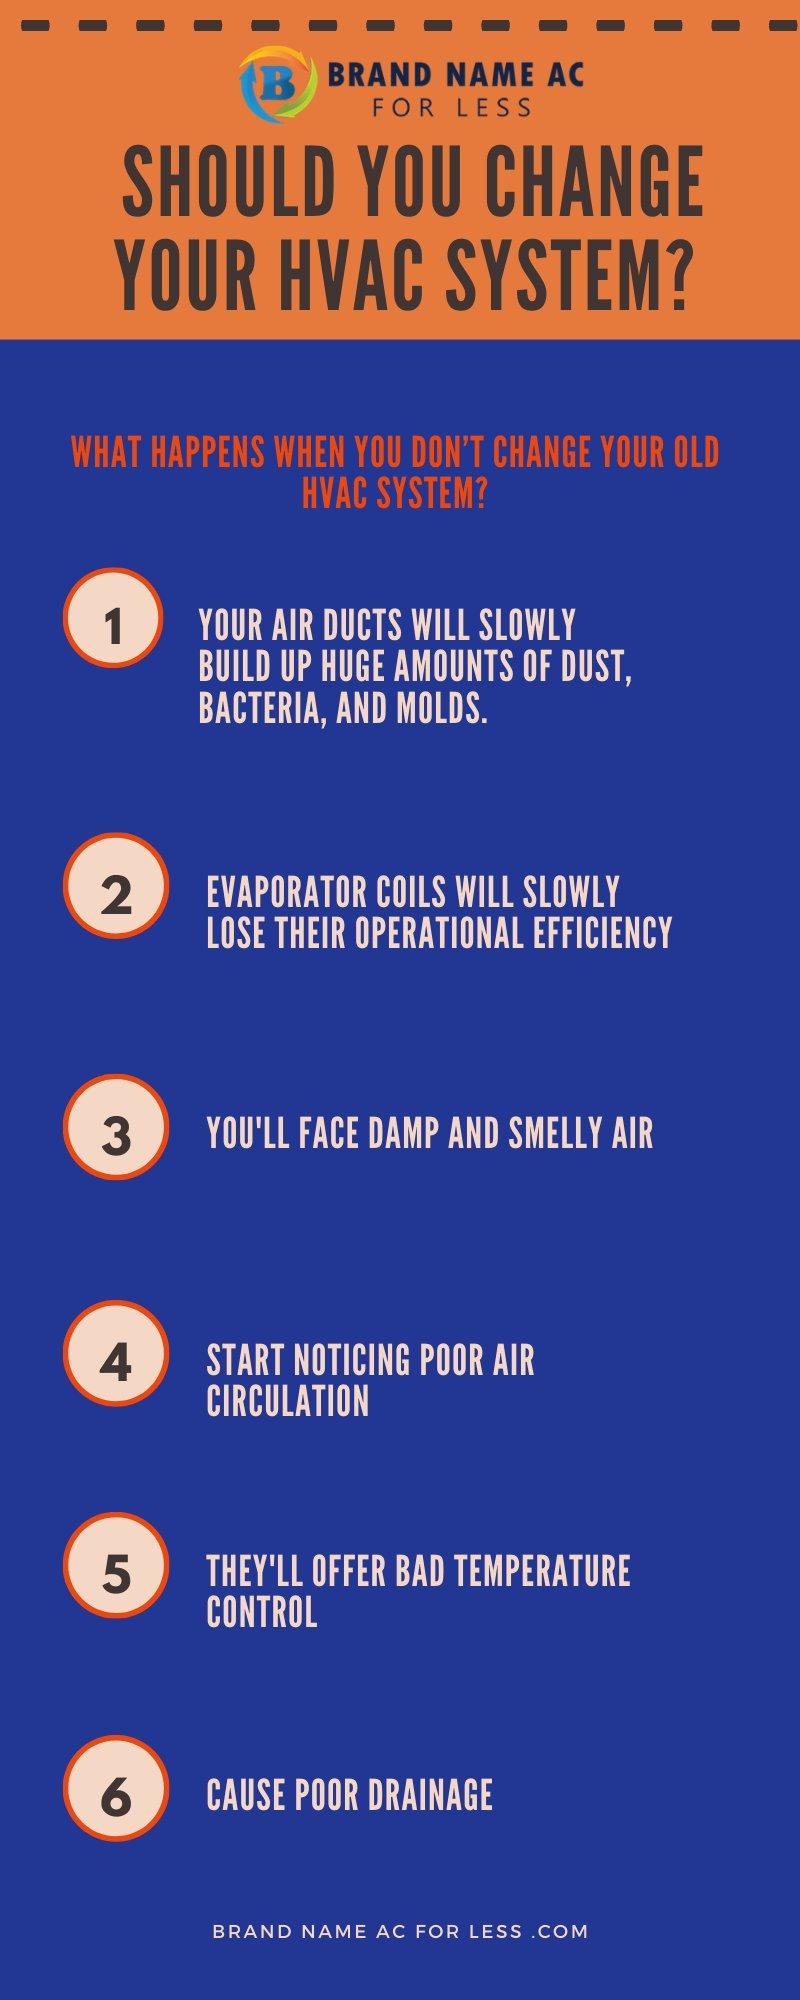 Should you change your HVAC system